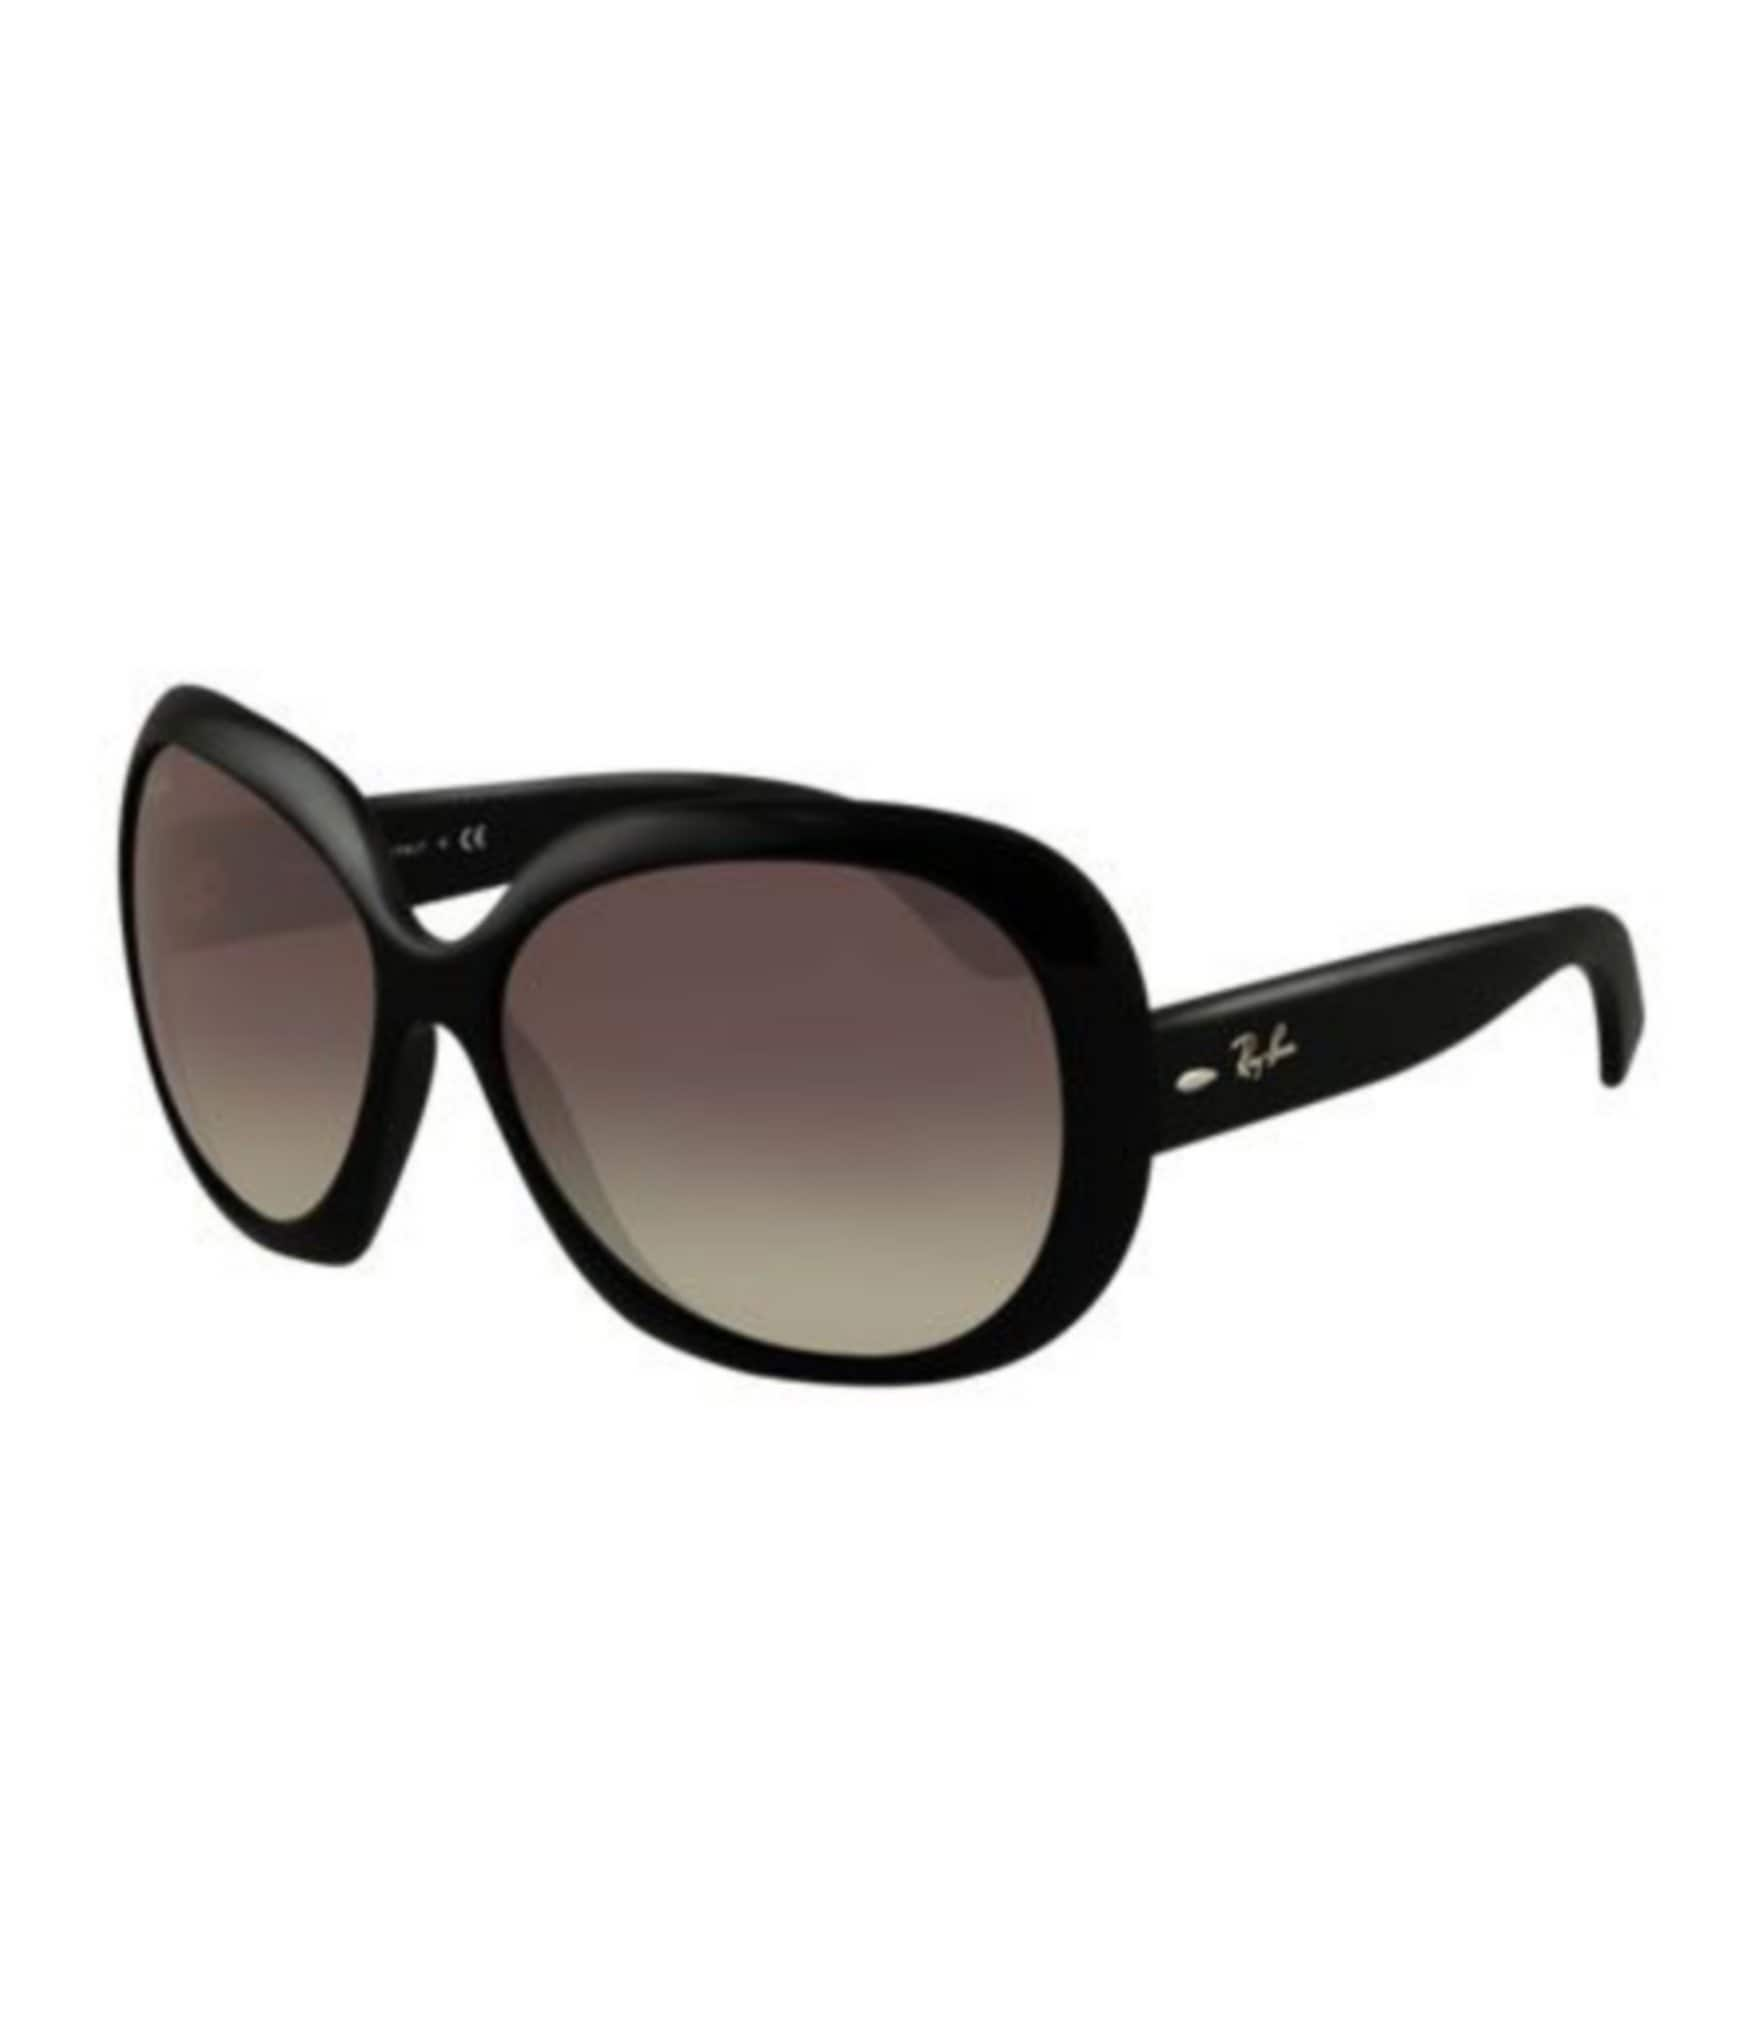 d7aaddc03f Ray-Ban Jackie Ohh II Oversized Sunglasses with Gradient Lenses ...